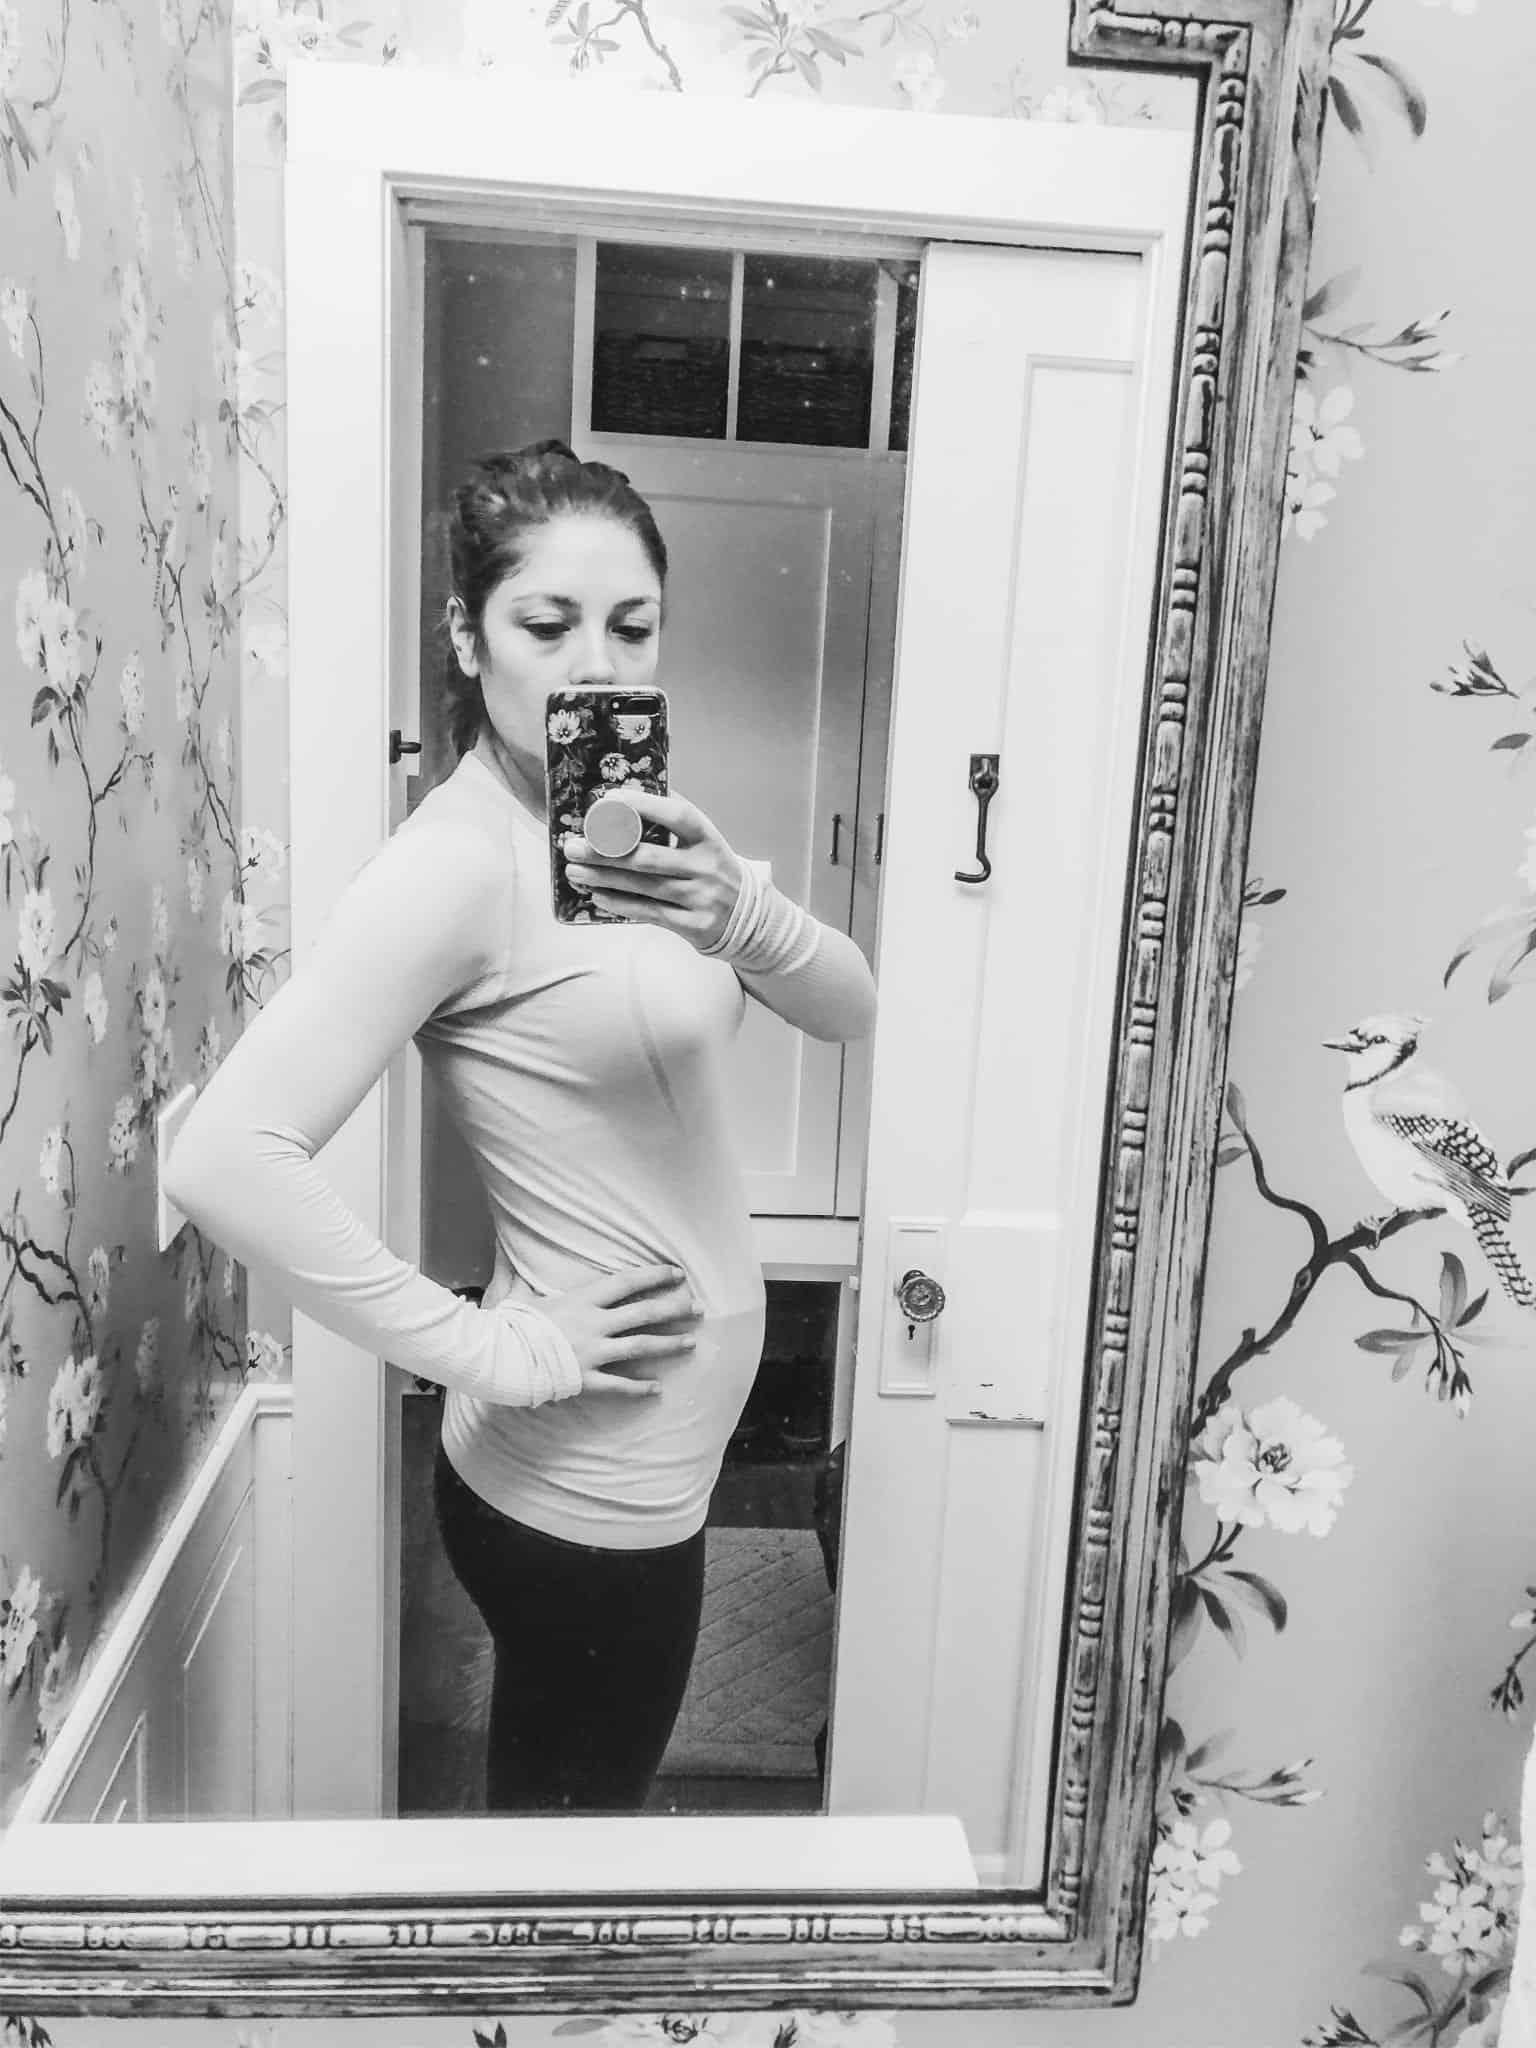 First Trimester - #firsttrimester #pregnancy #tararochfordnutrition